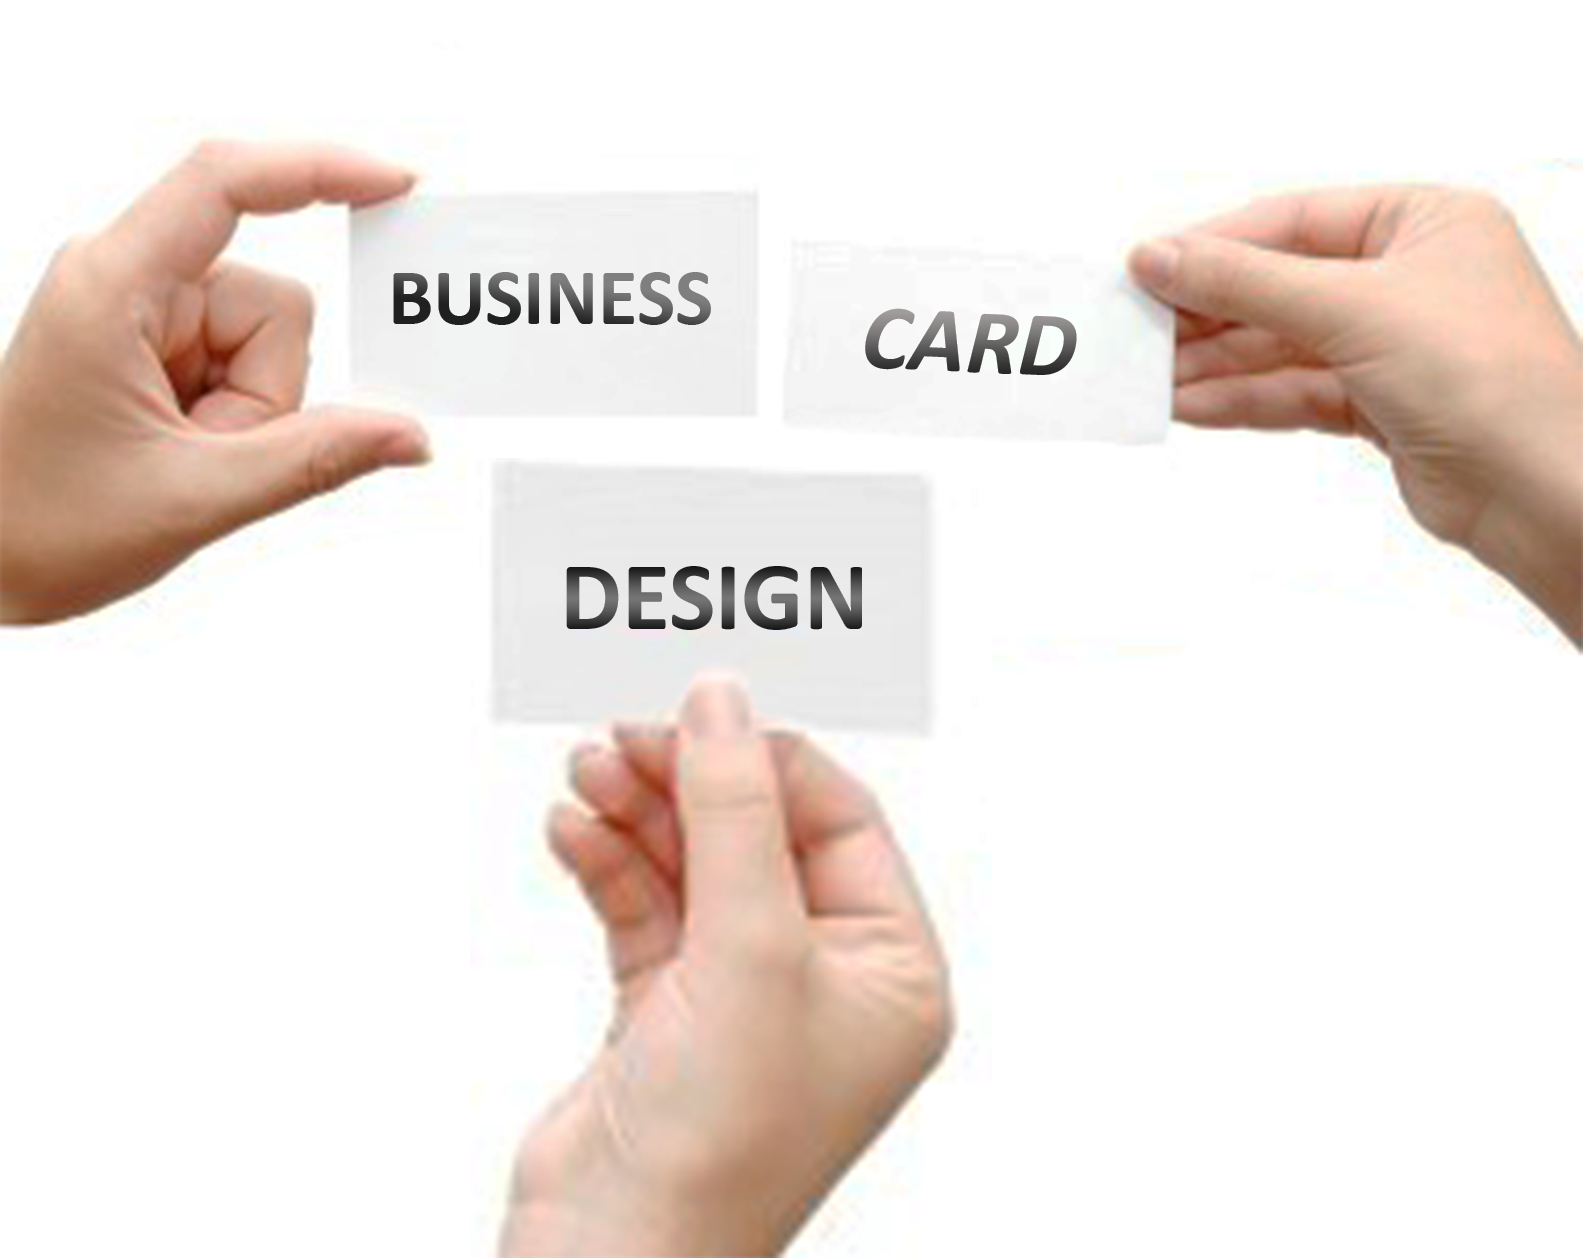 Business Card Design Company in Thane | Mumbai - Infiyug Technologies